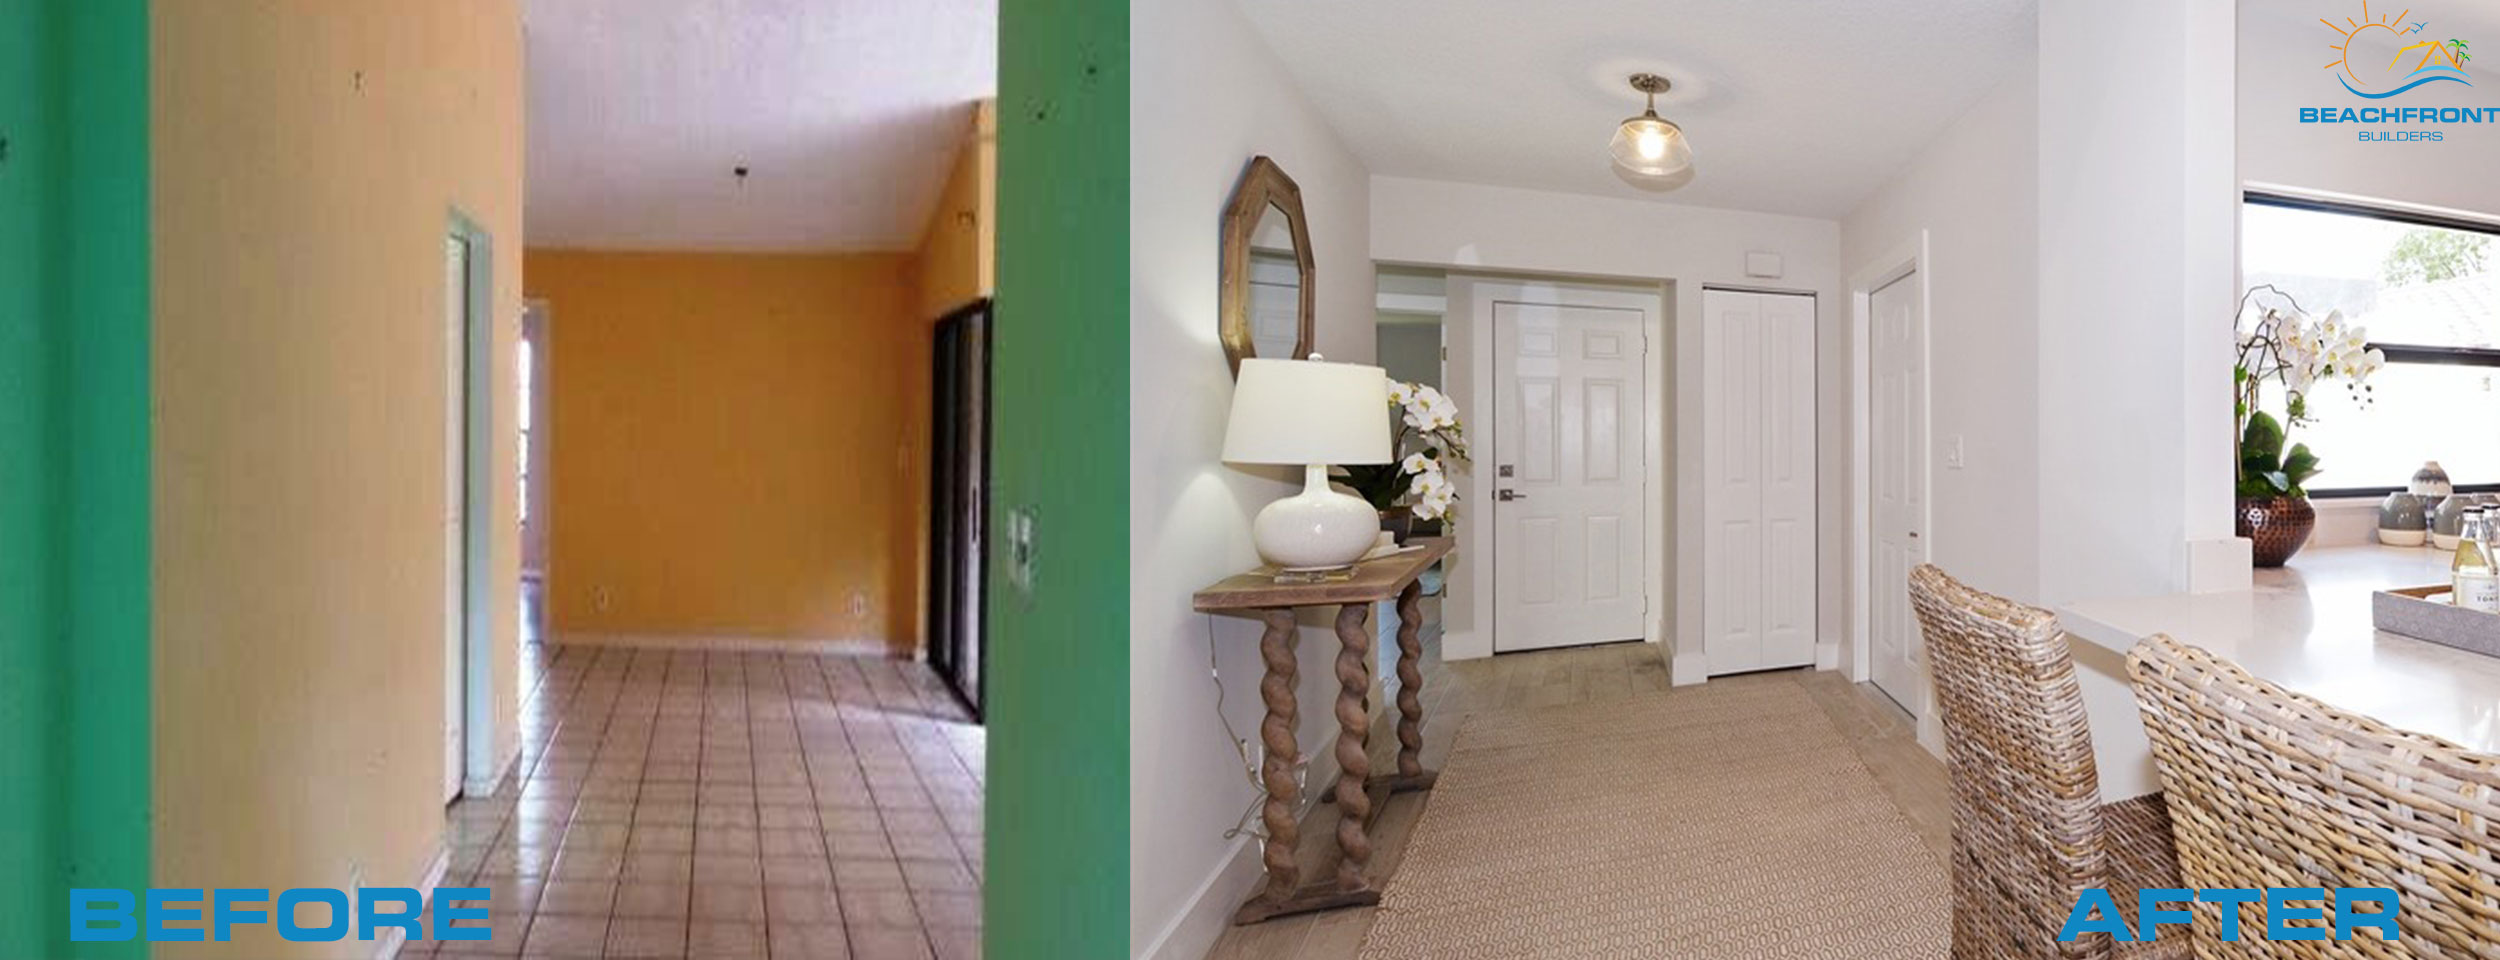 entryway before and afte rdelray beach flip house